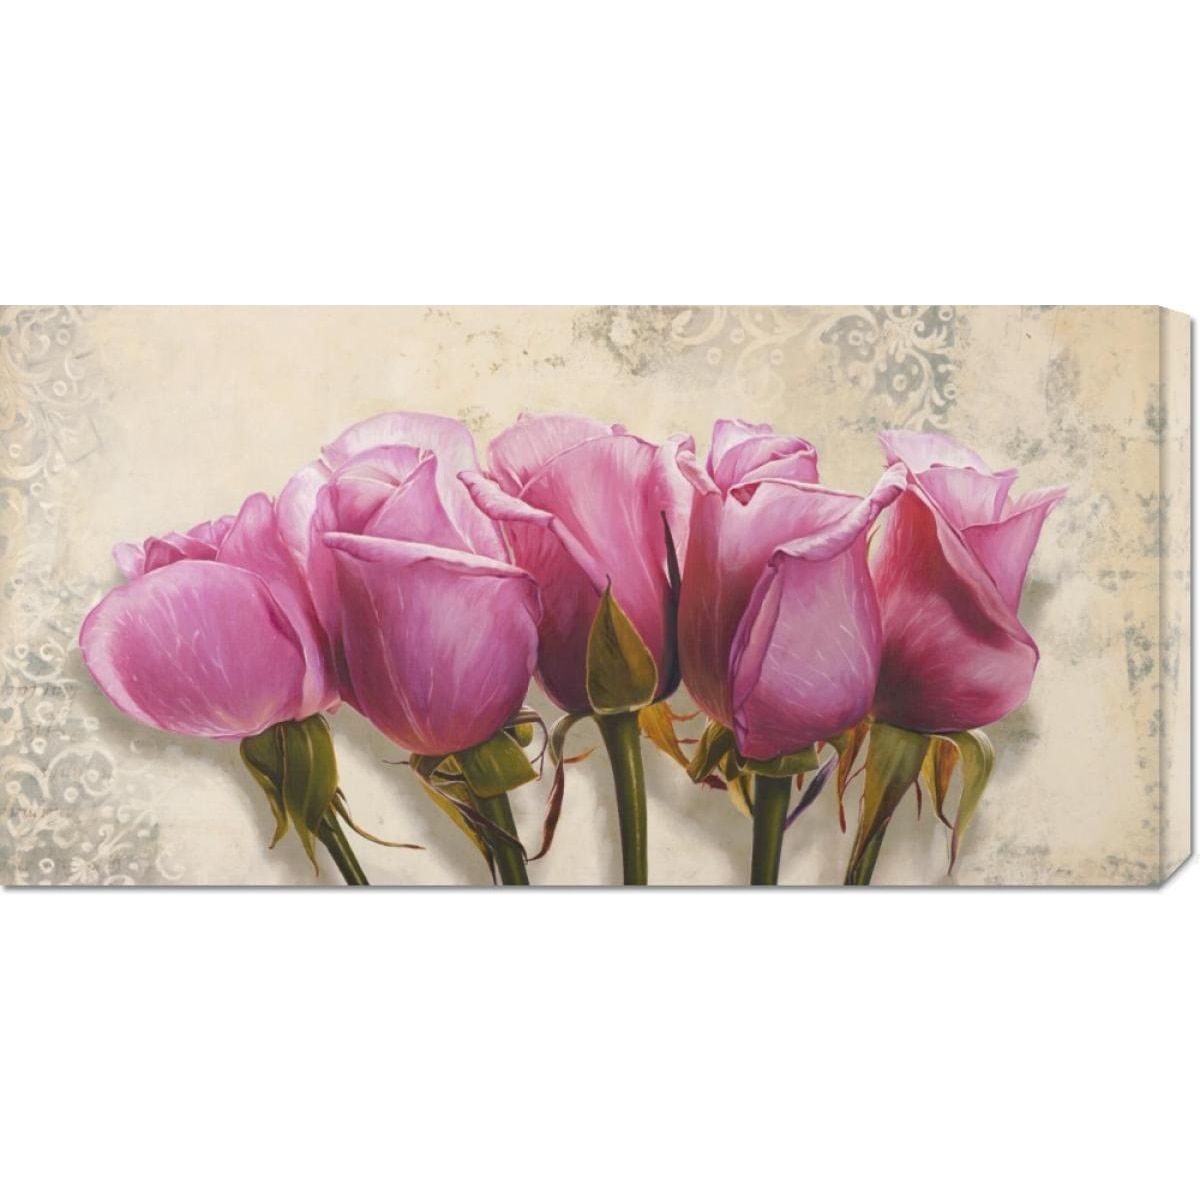 Global Gallery Elena Dolci 'Royal Roses' Stretched Art